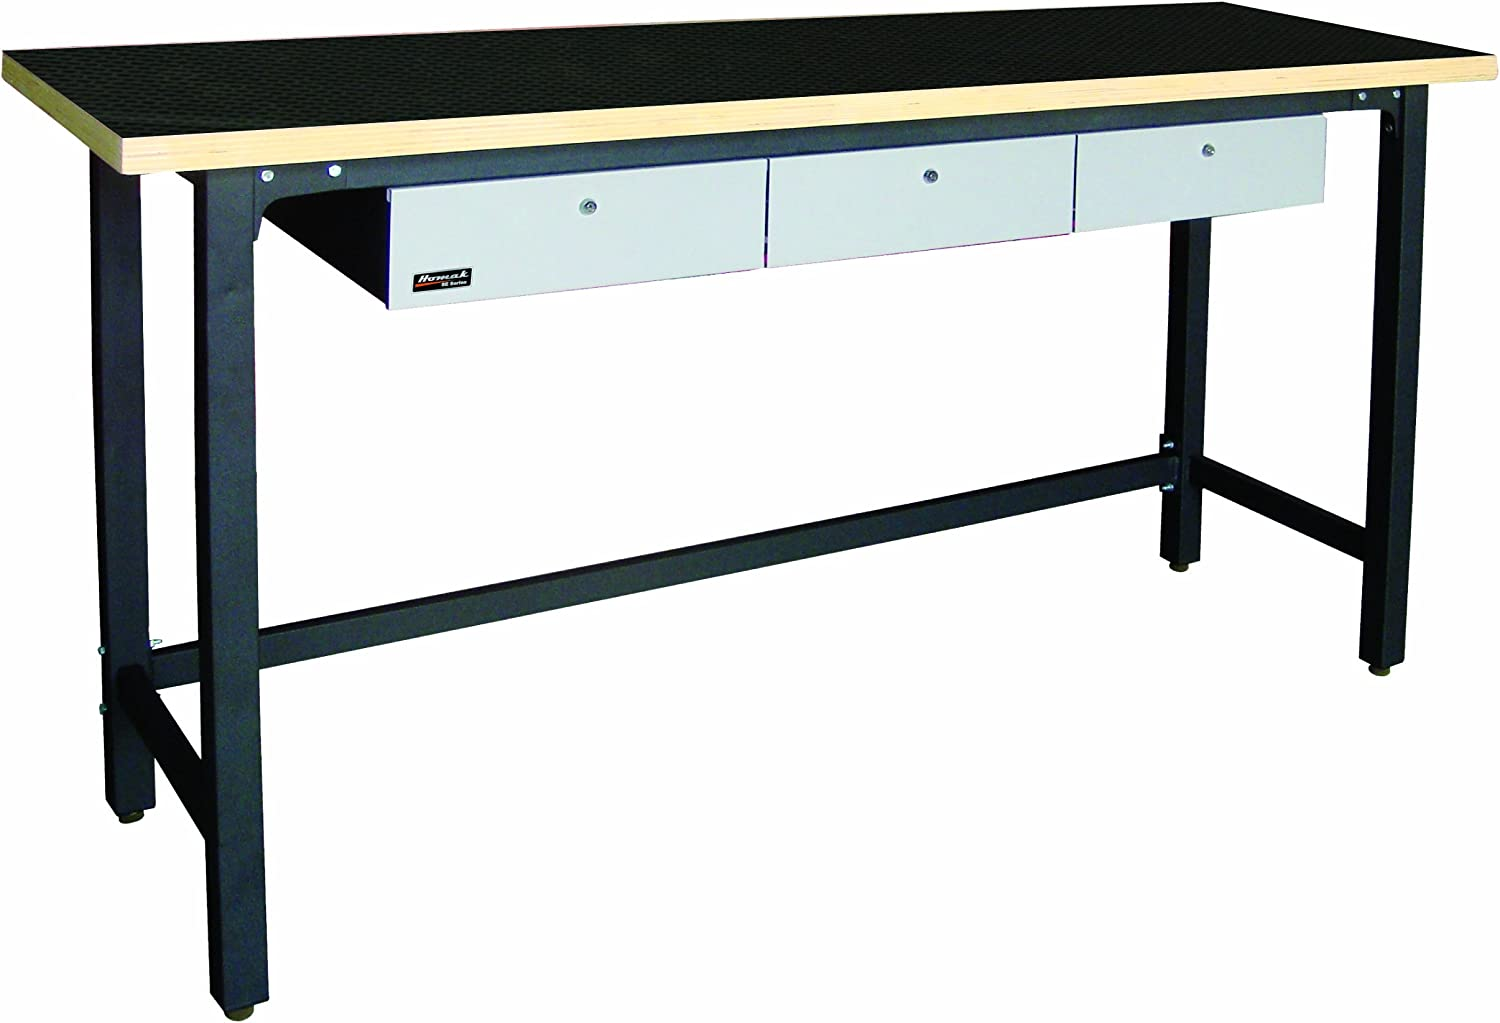 Homak 79-Inch Workbench With free Special price for a limited time shipping 3 Drawers and Steel Wood Top GS00